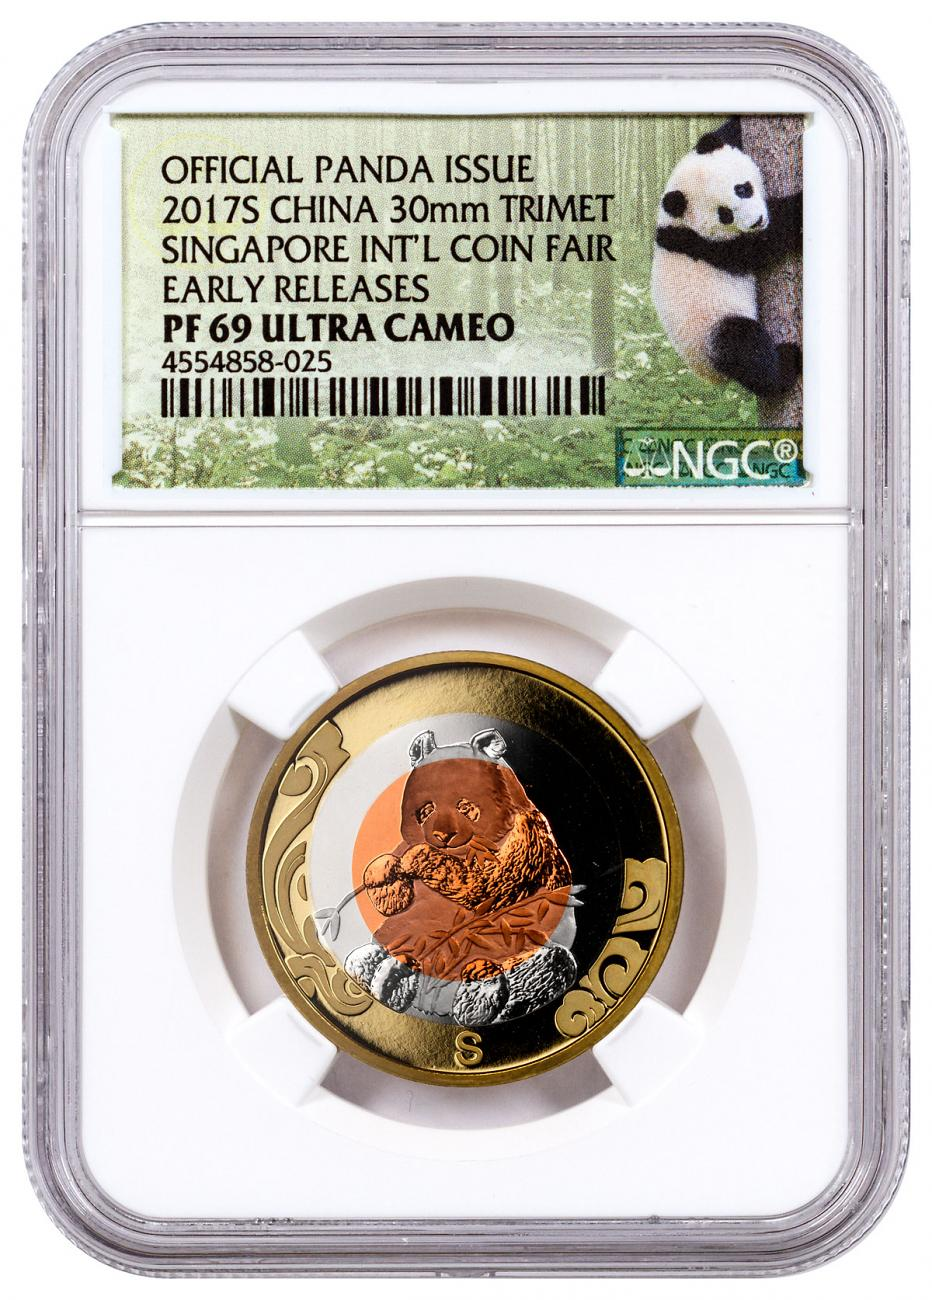 2017-S China Singapore International Coin Fair Tri-Metal Panda Brass + Cupronickel + Copper Proof Medal NGC PF69 UC ER Exclusive Panda Label